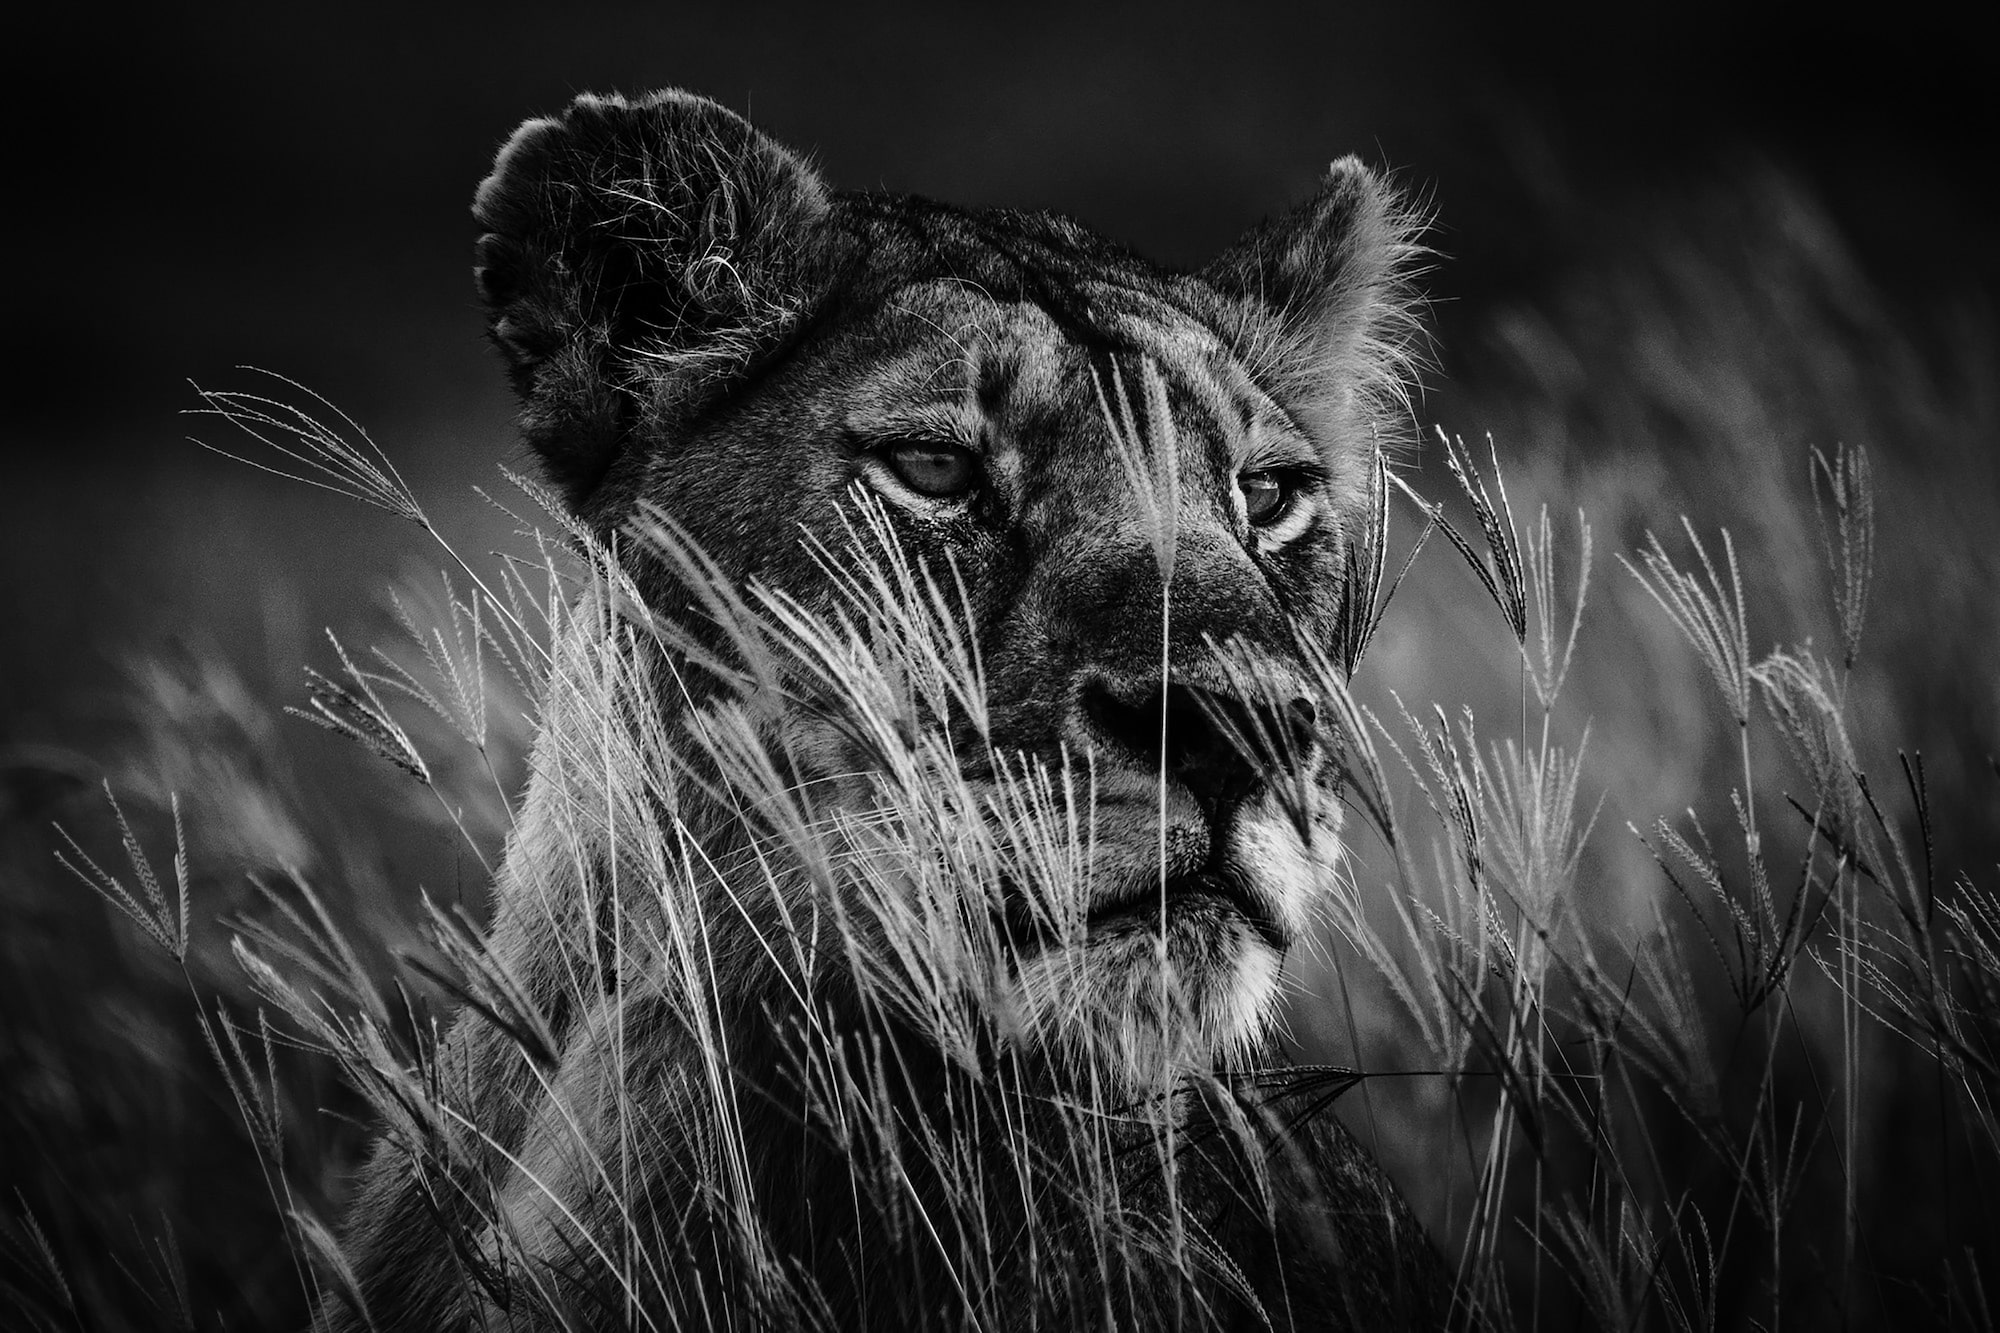 laurent baheux sony alpha 9 a lioness sits patiently and watches behind tall grass in the savannah